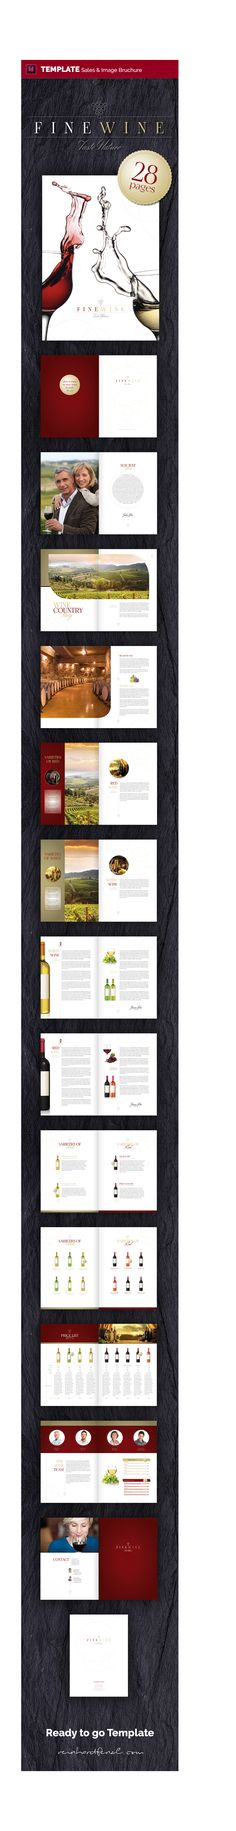 FINE WINE - Sales & Image Brochure - 28 pages template Just fill in your text and your pictures and you are ready to go. Invitation Mockup, Button Decorations, Wine Sale, Sales Image, Photo Link, Fine Wine, Grafik Design, Coffee Recipes, Vector Background